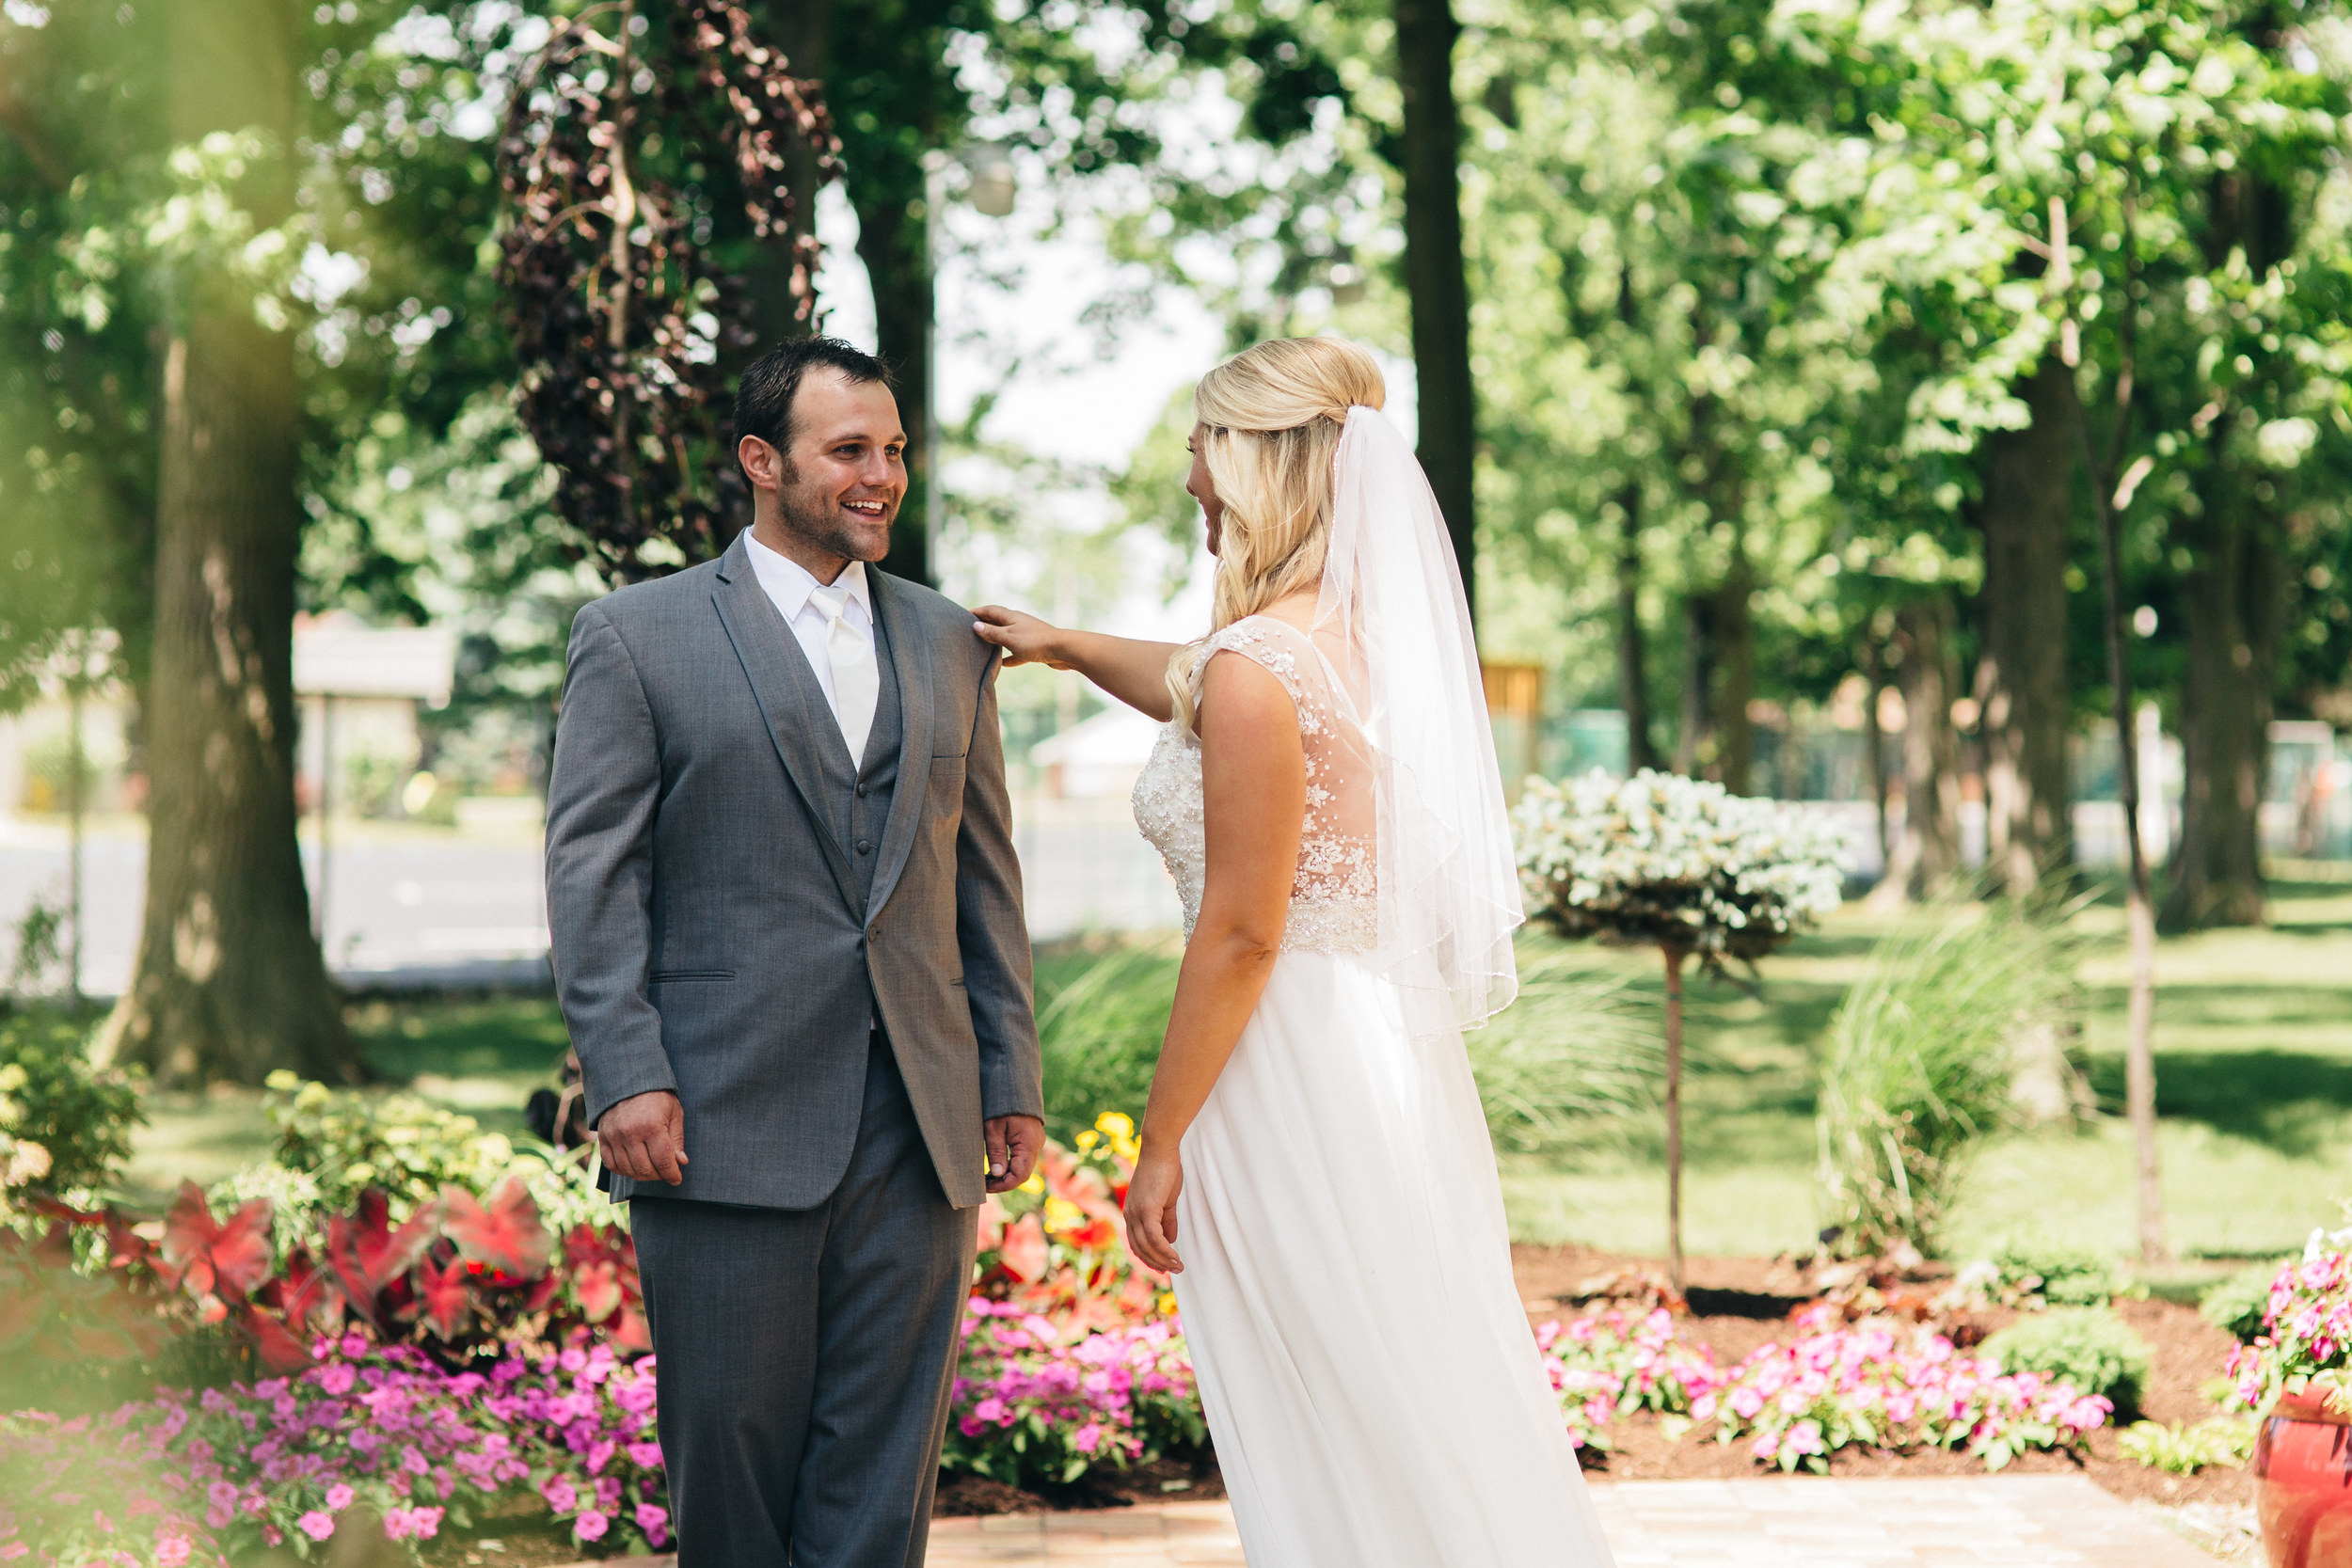 Bride and groom do first look before ceremony at Oak Shade Grove Wedding.